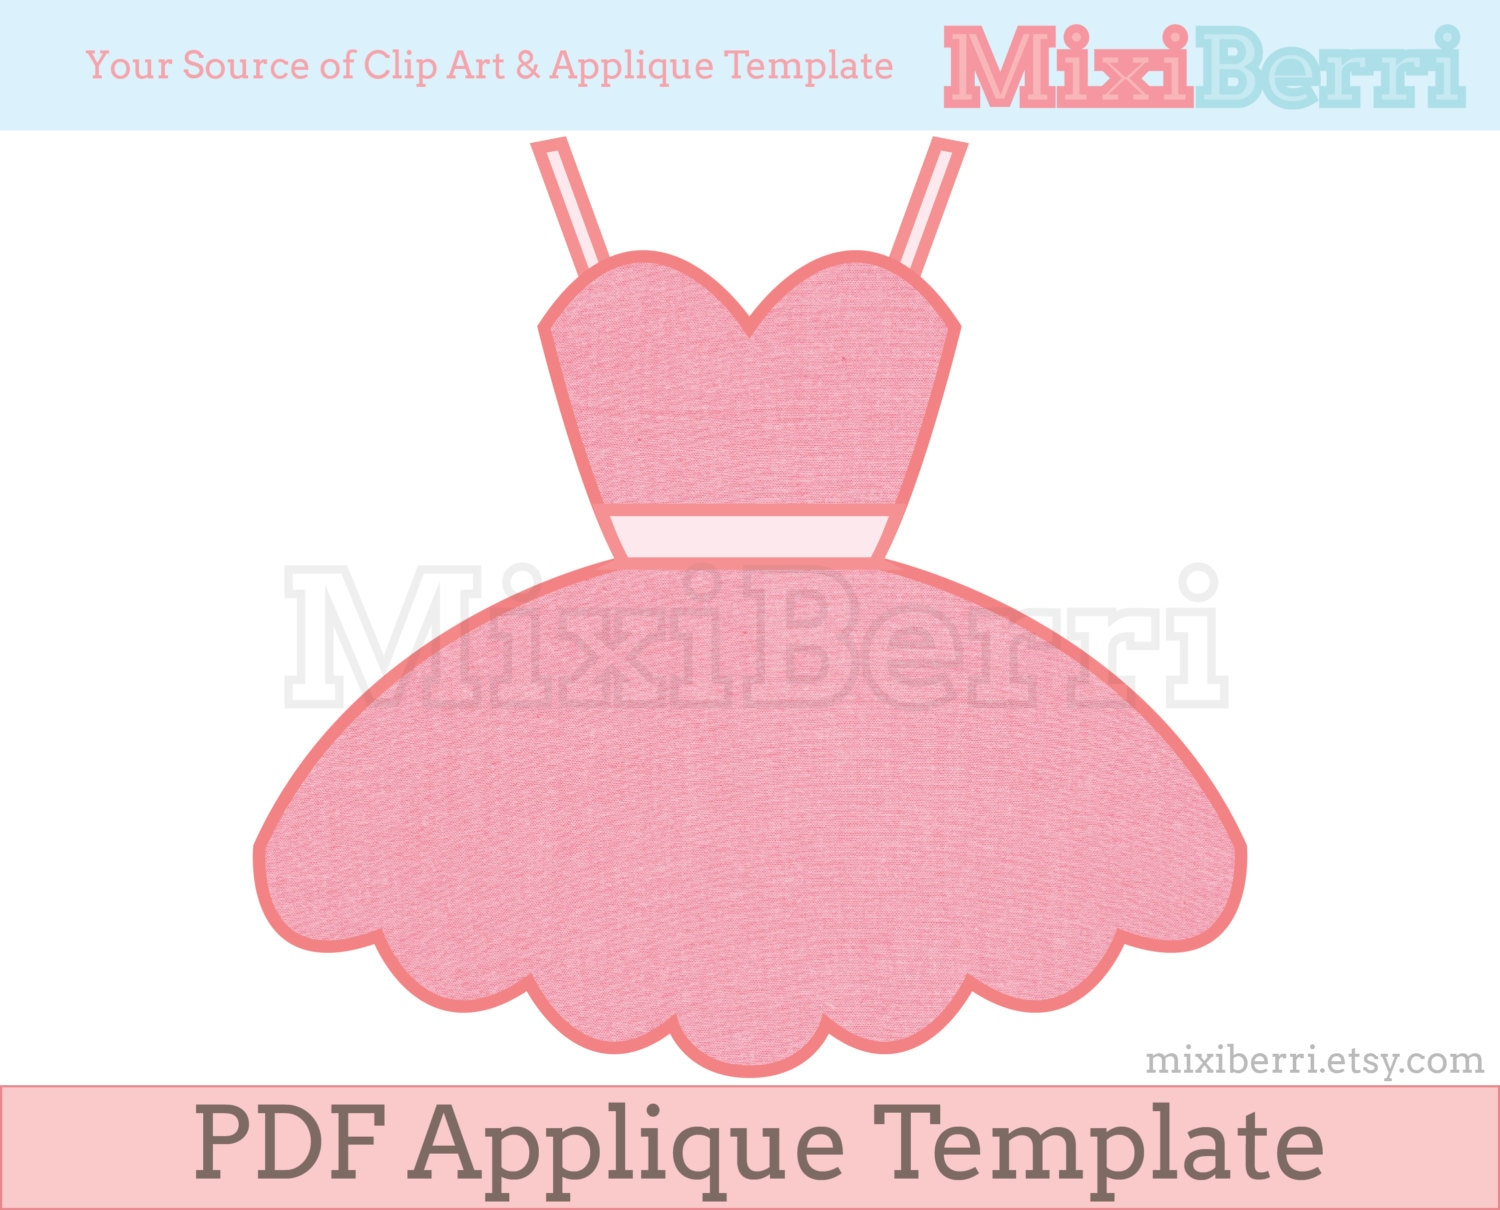 ballerina tutu dress appliqué template pdf applique pattern etsy